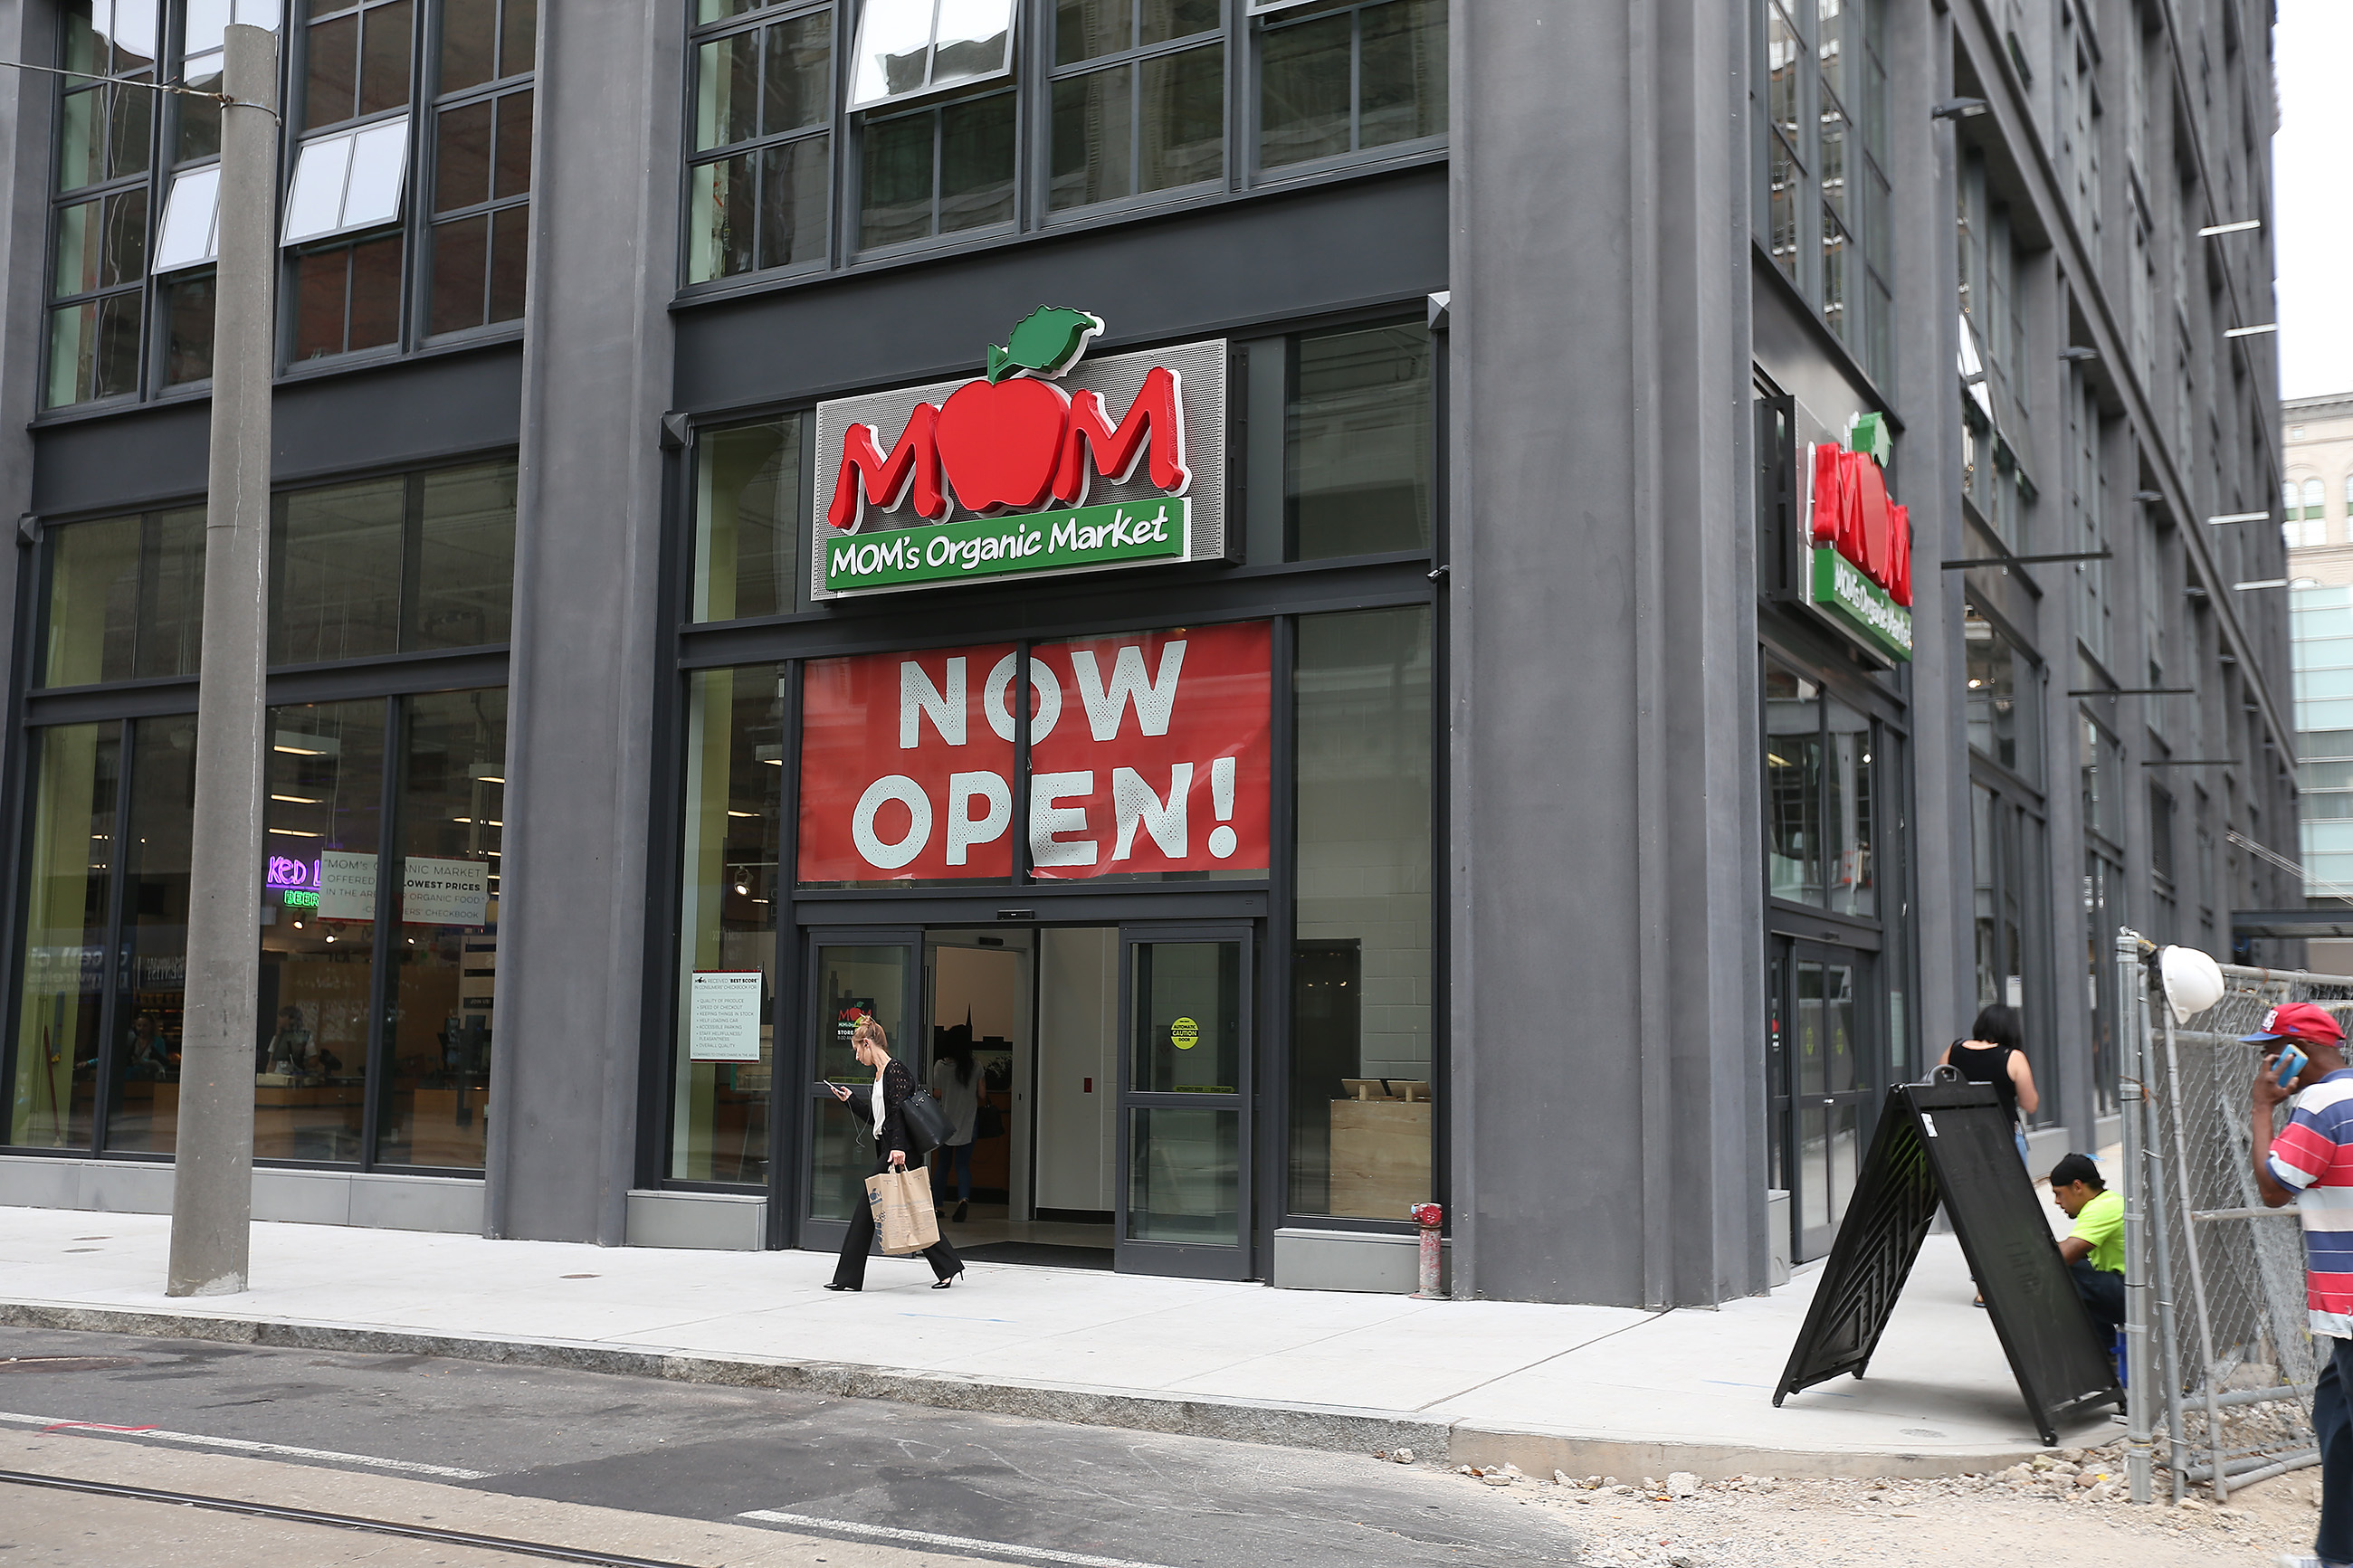 A shopper exits MOM's Organic Market which opened Sept. 8 at East Market.